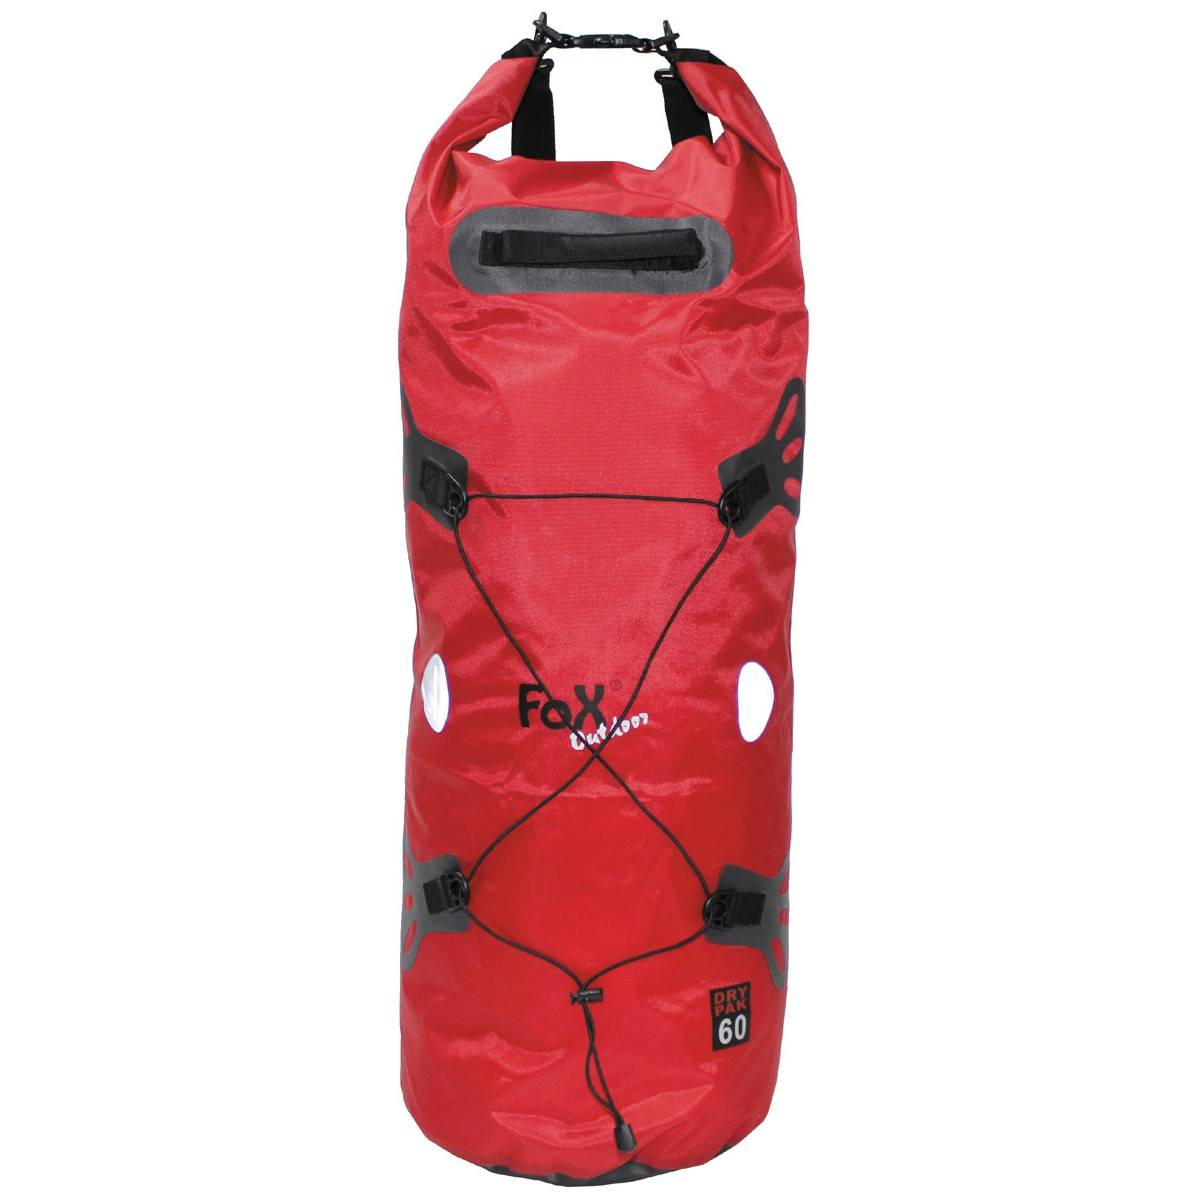 Sacca DRY PAK 60 Fox Outdoors